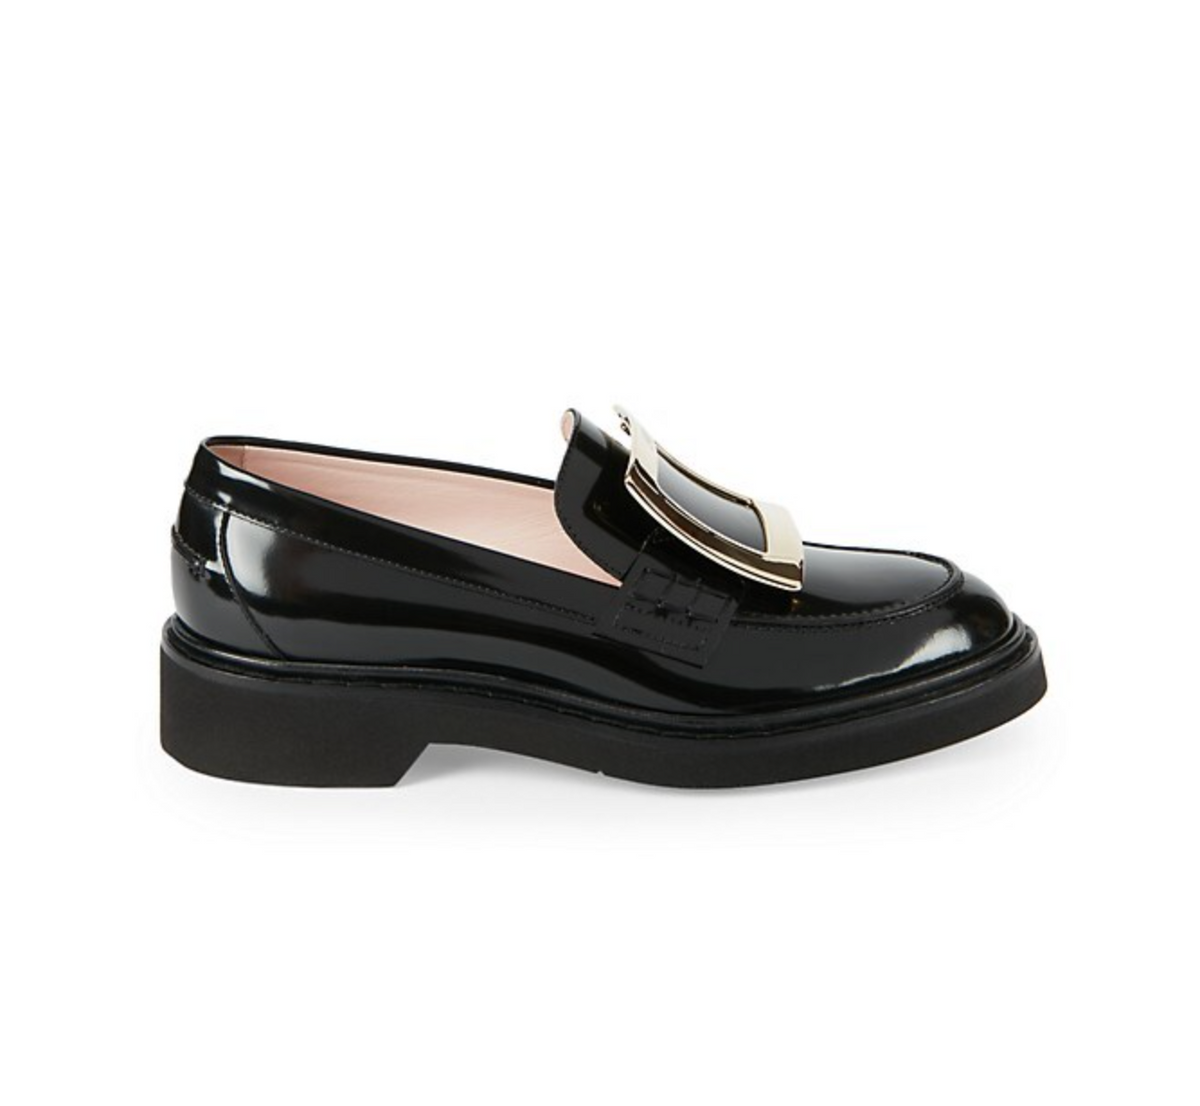 Viv Rangers Patent Leather Loafers